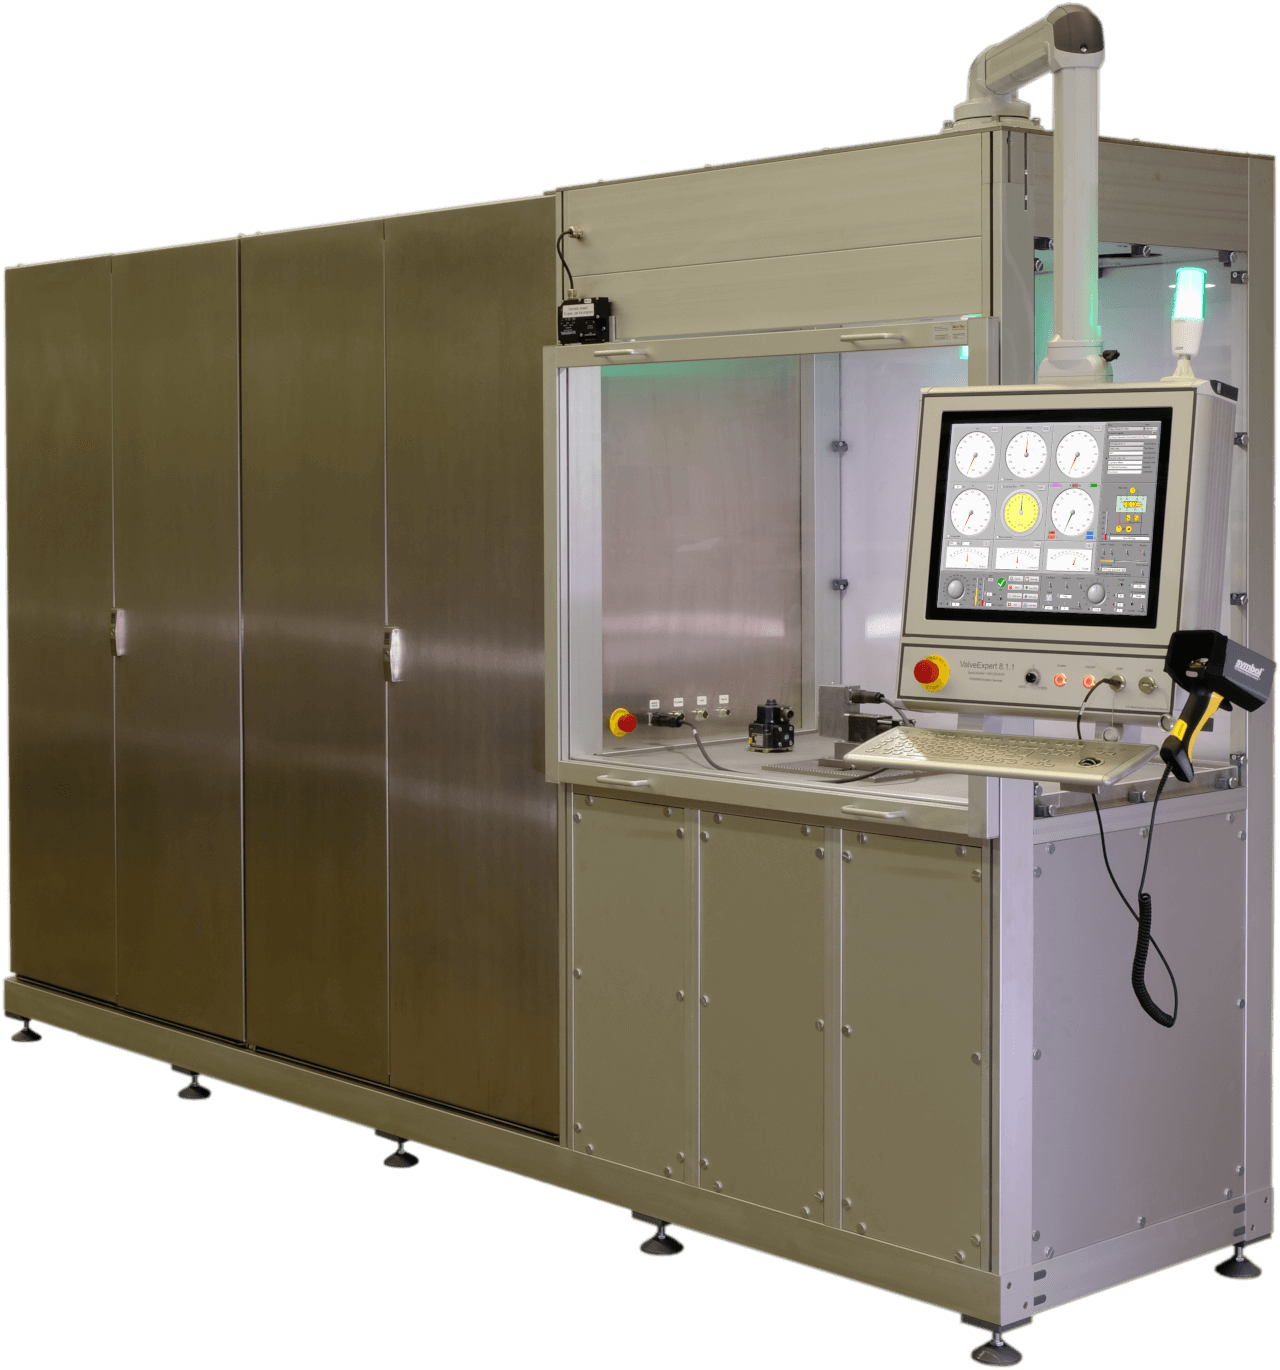 ValveExpert 8.1.1 - Aerospace test stand for hydraulic servo- and proportional valves